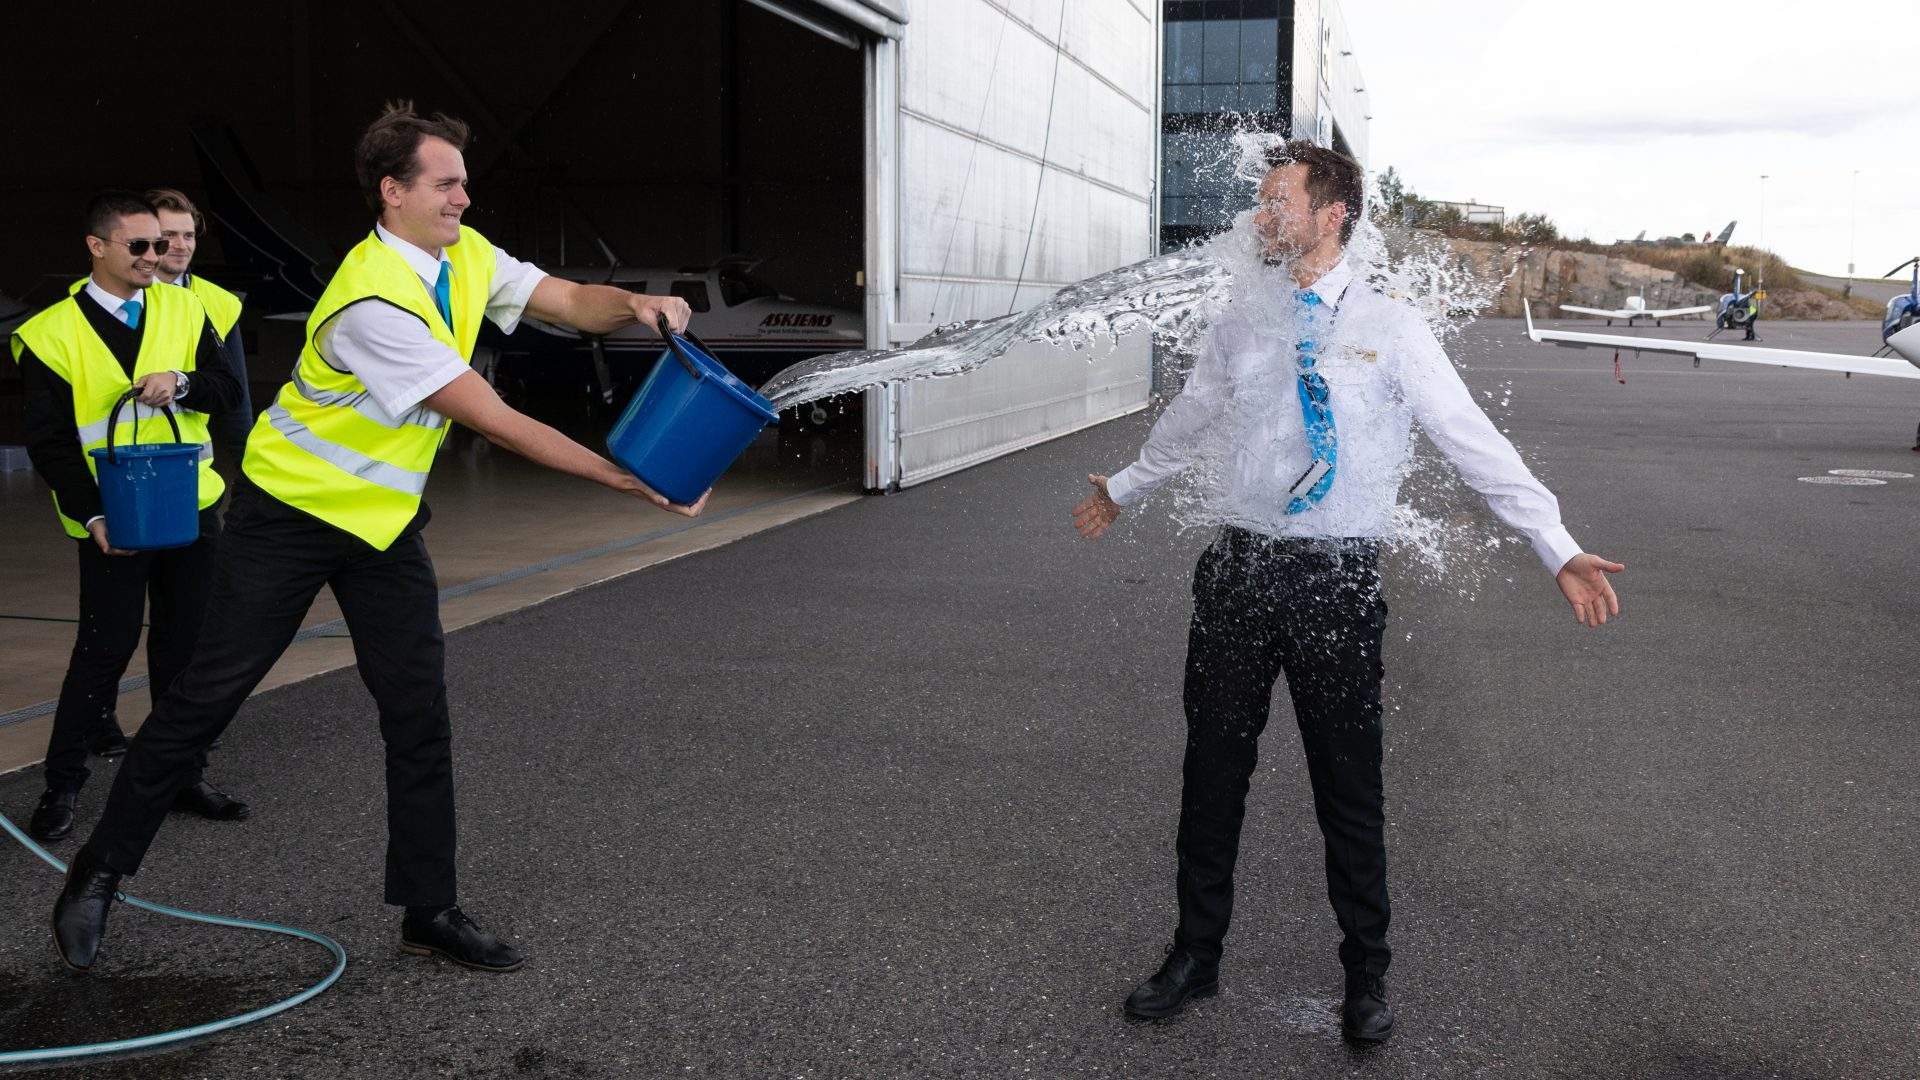 Student Hjerpsted is being baptized by his fellow students after his first solo flight